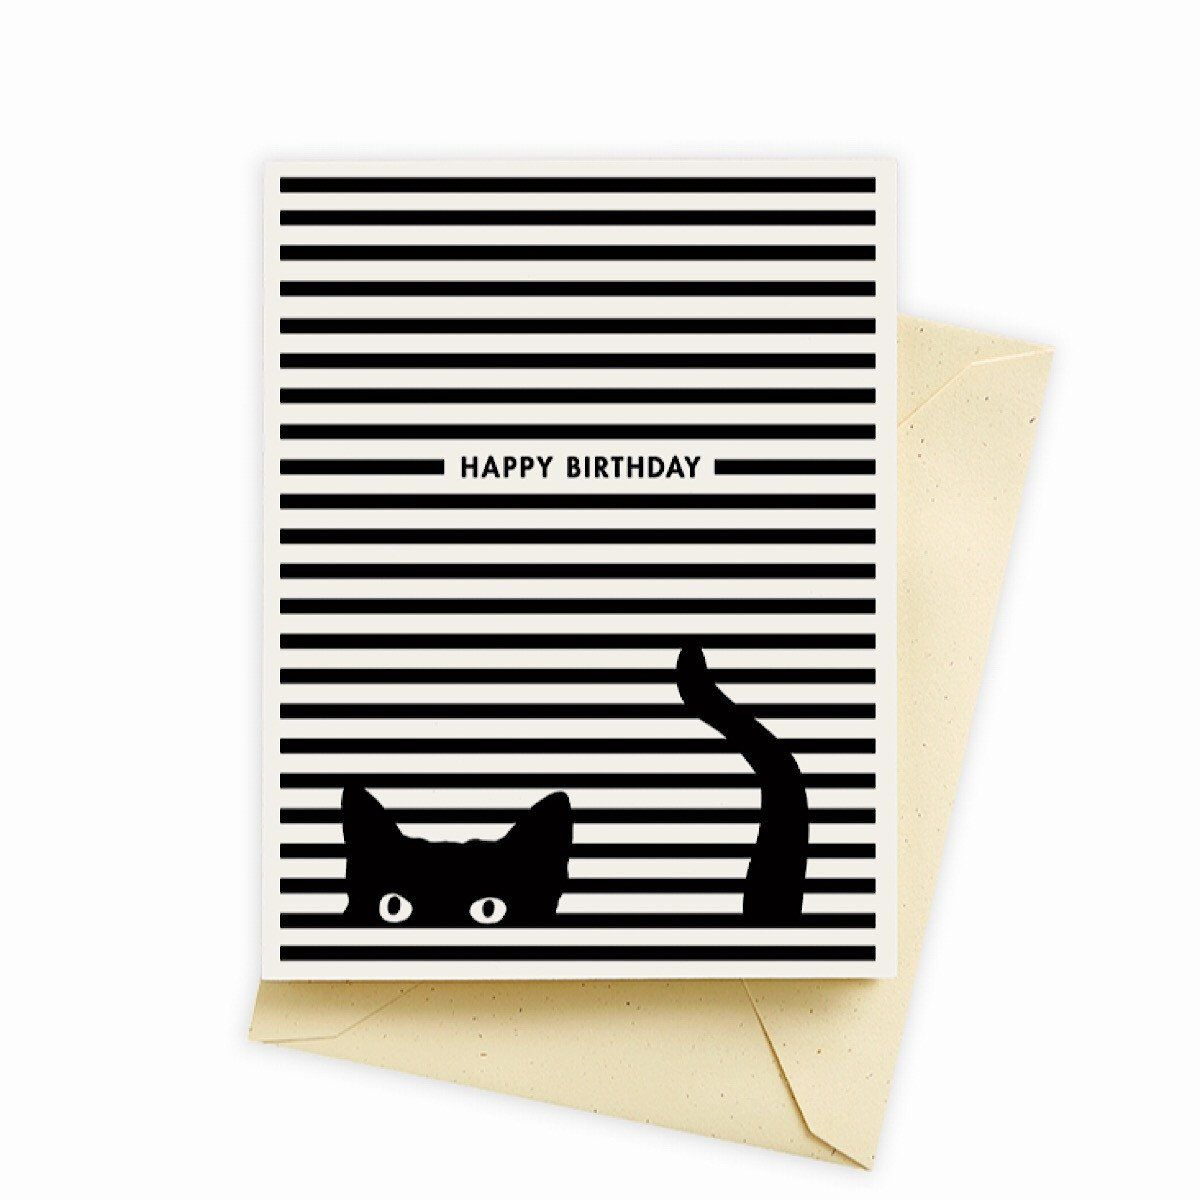 Seltzer goods cards happy birthday products seltzer goods cards happy birthday m4hsunfo